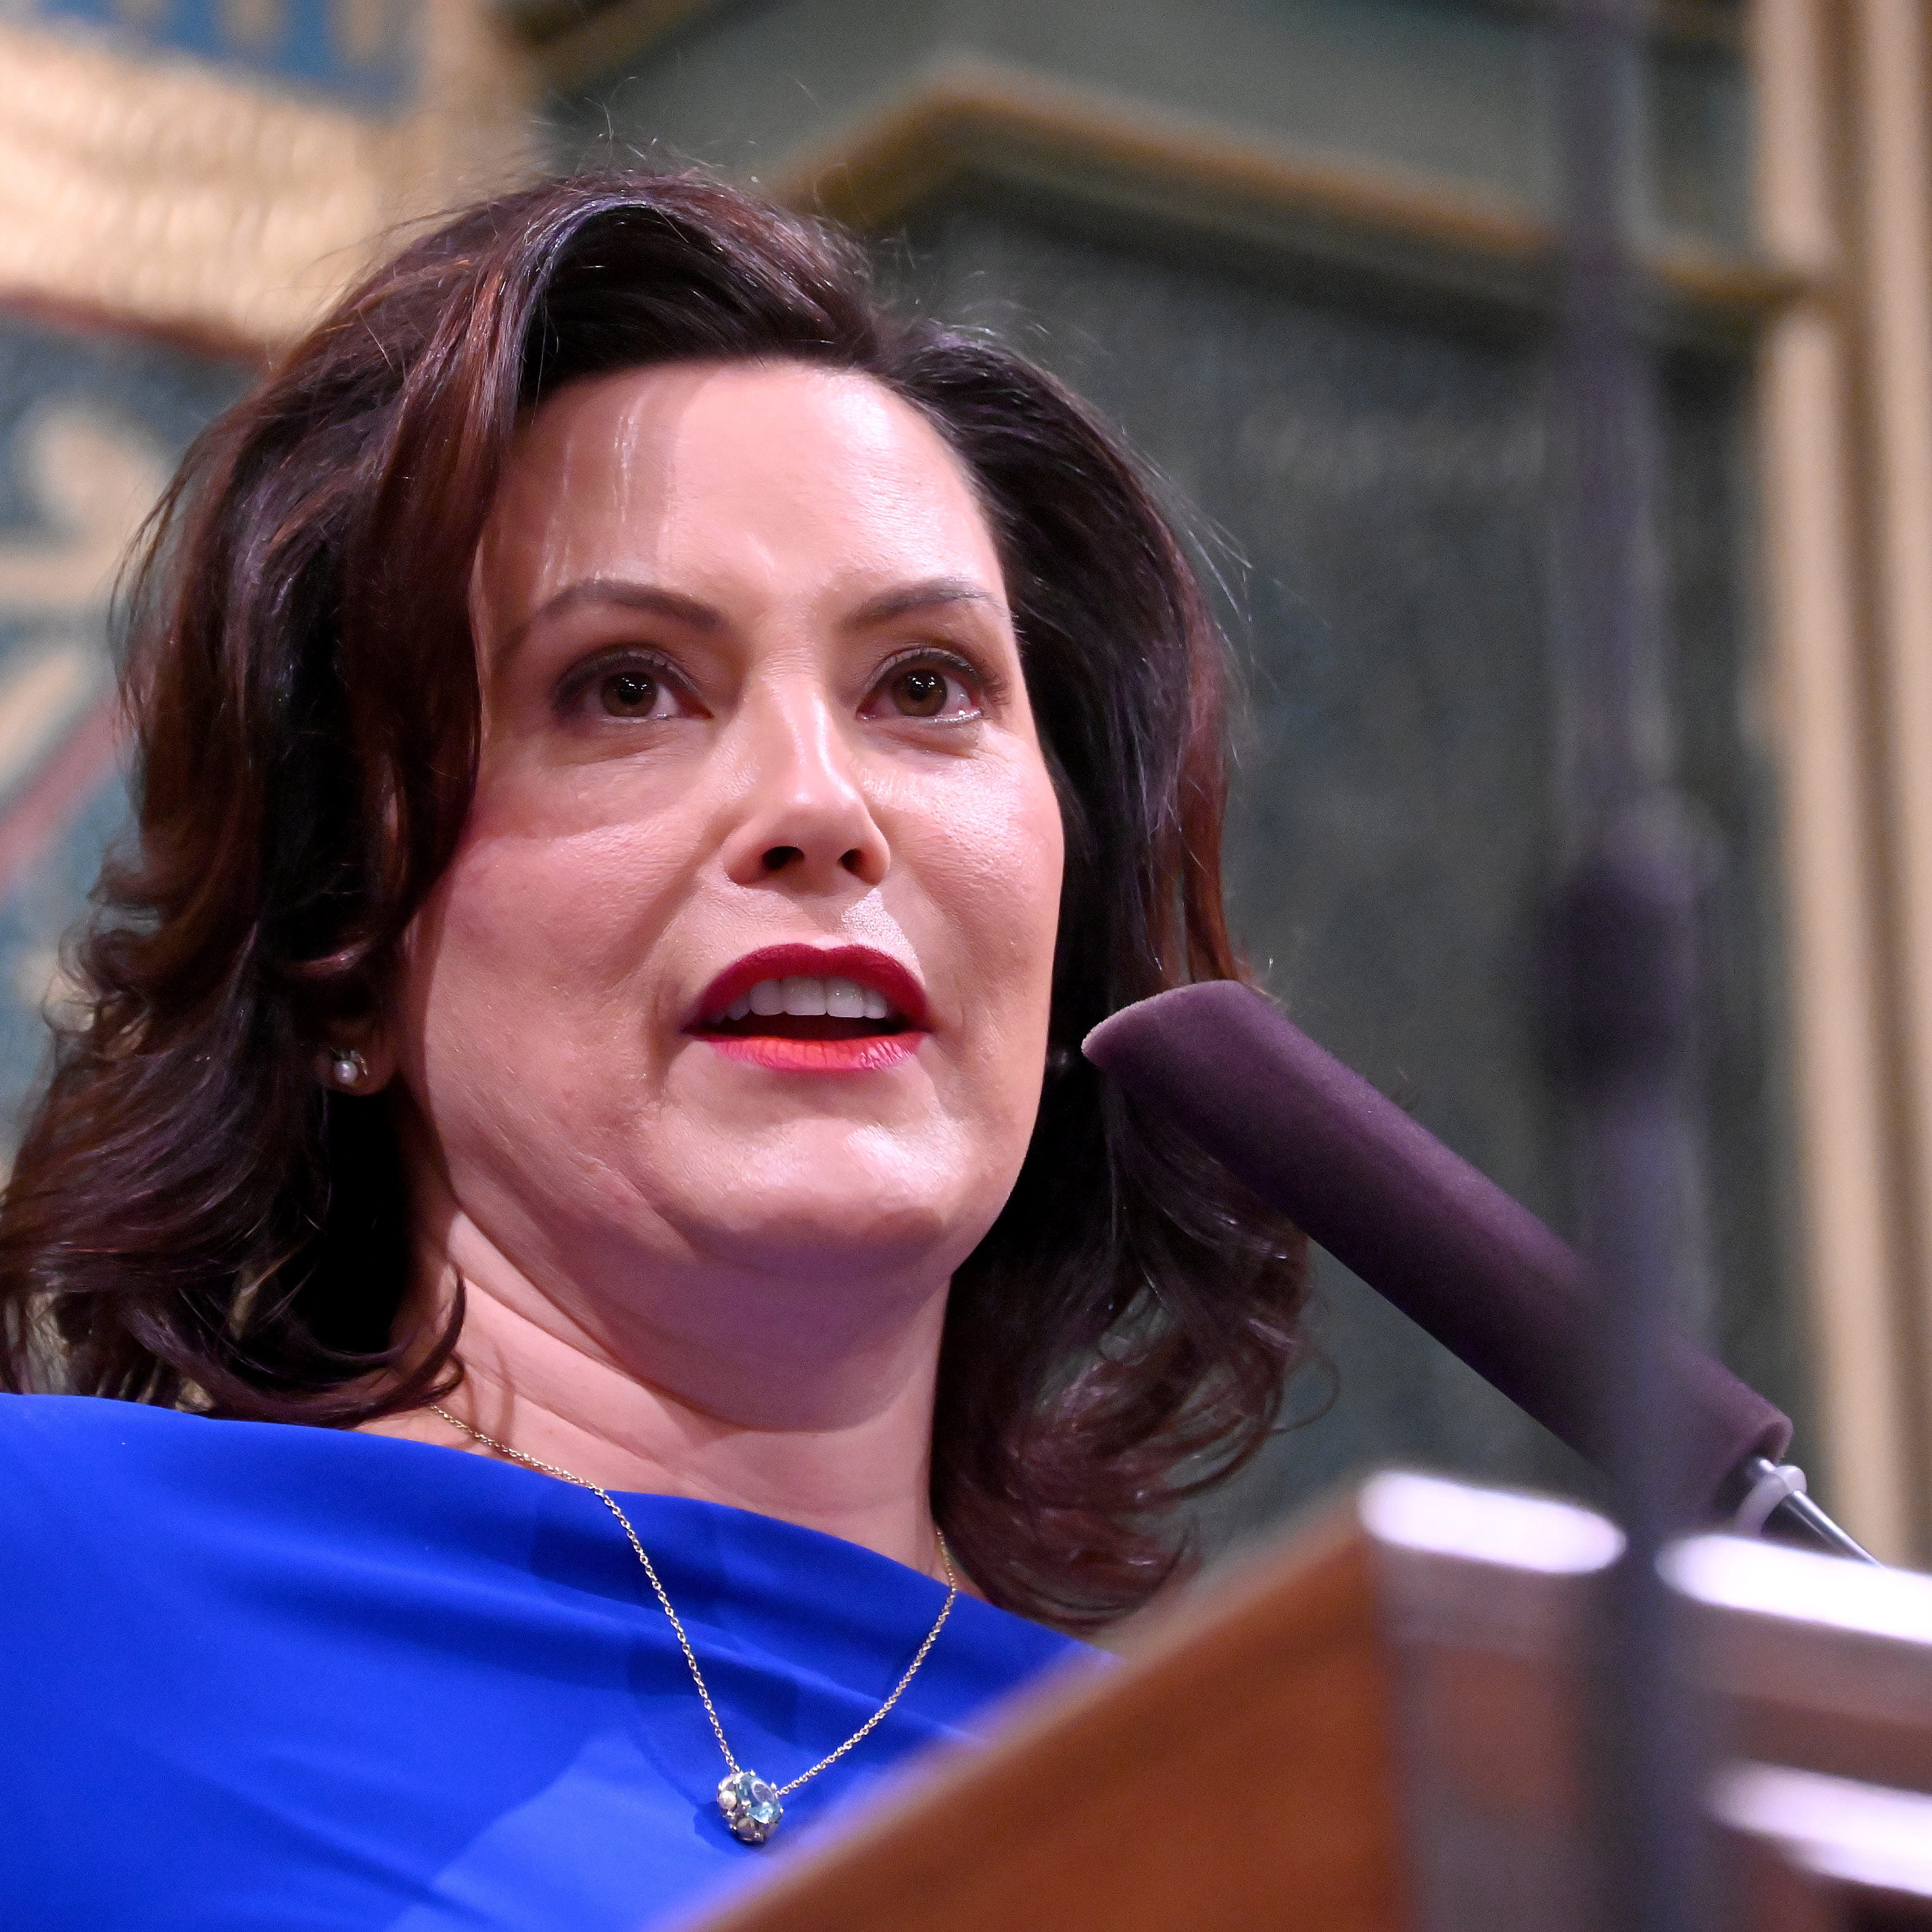 Opinion: Whitmer chooses between politics and governing